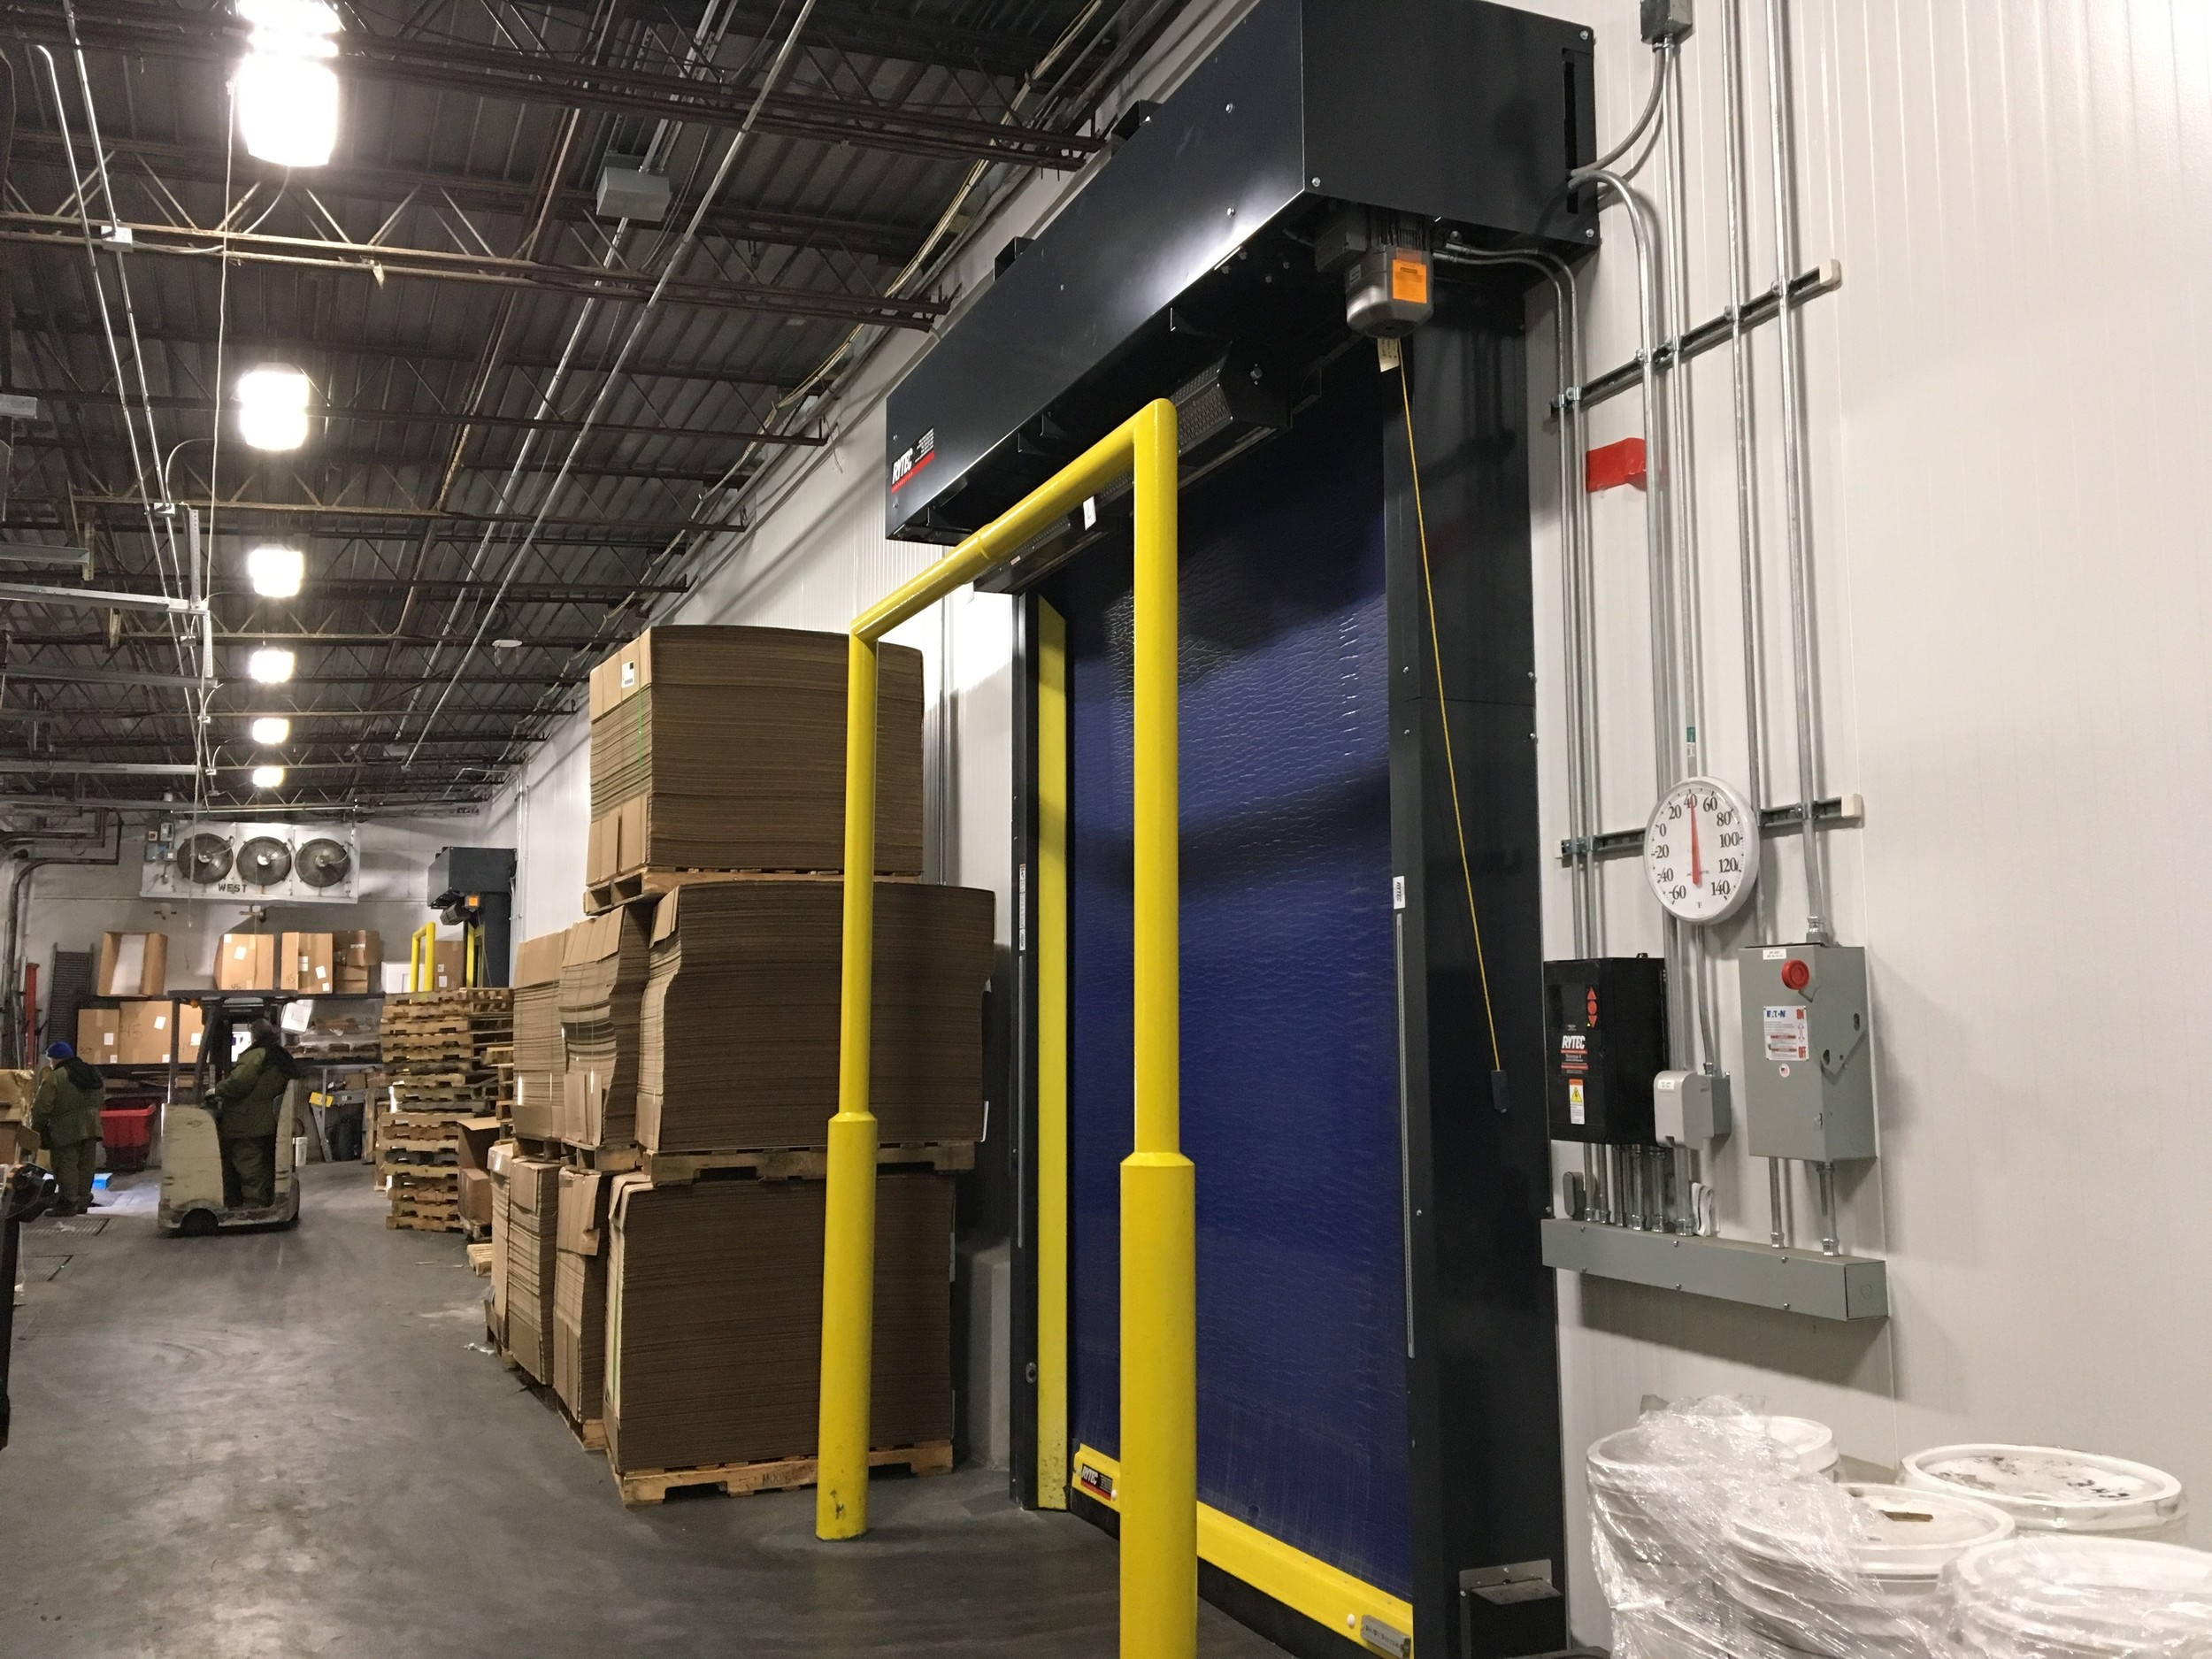 Zip Door High Speed Cold Storage Freezer Door Rytec Albany Dynaco Rice Equipment Door Service St Louis MO IL